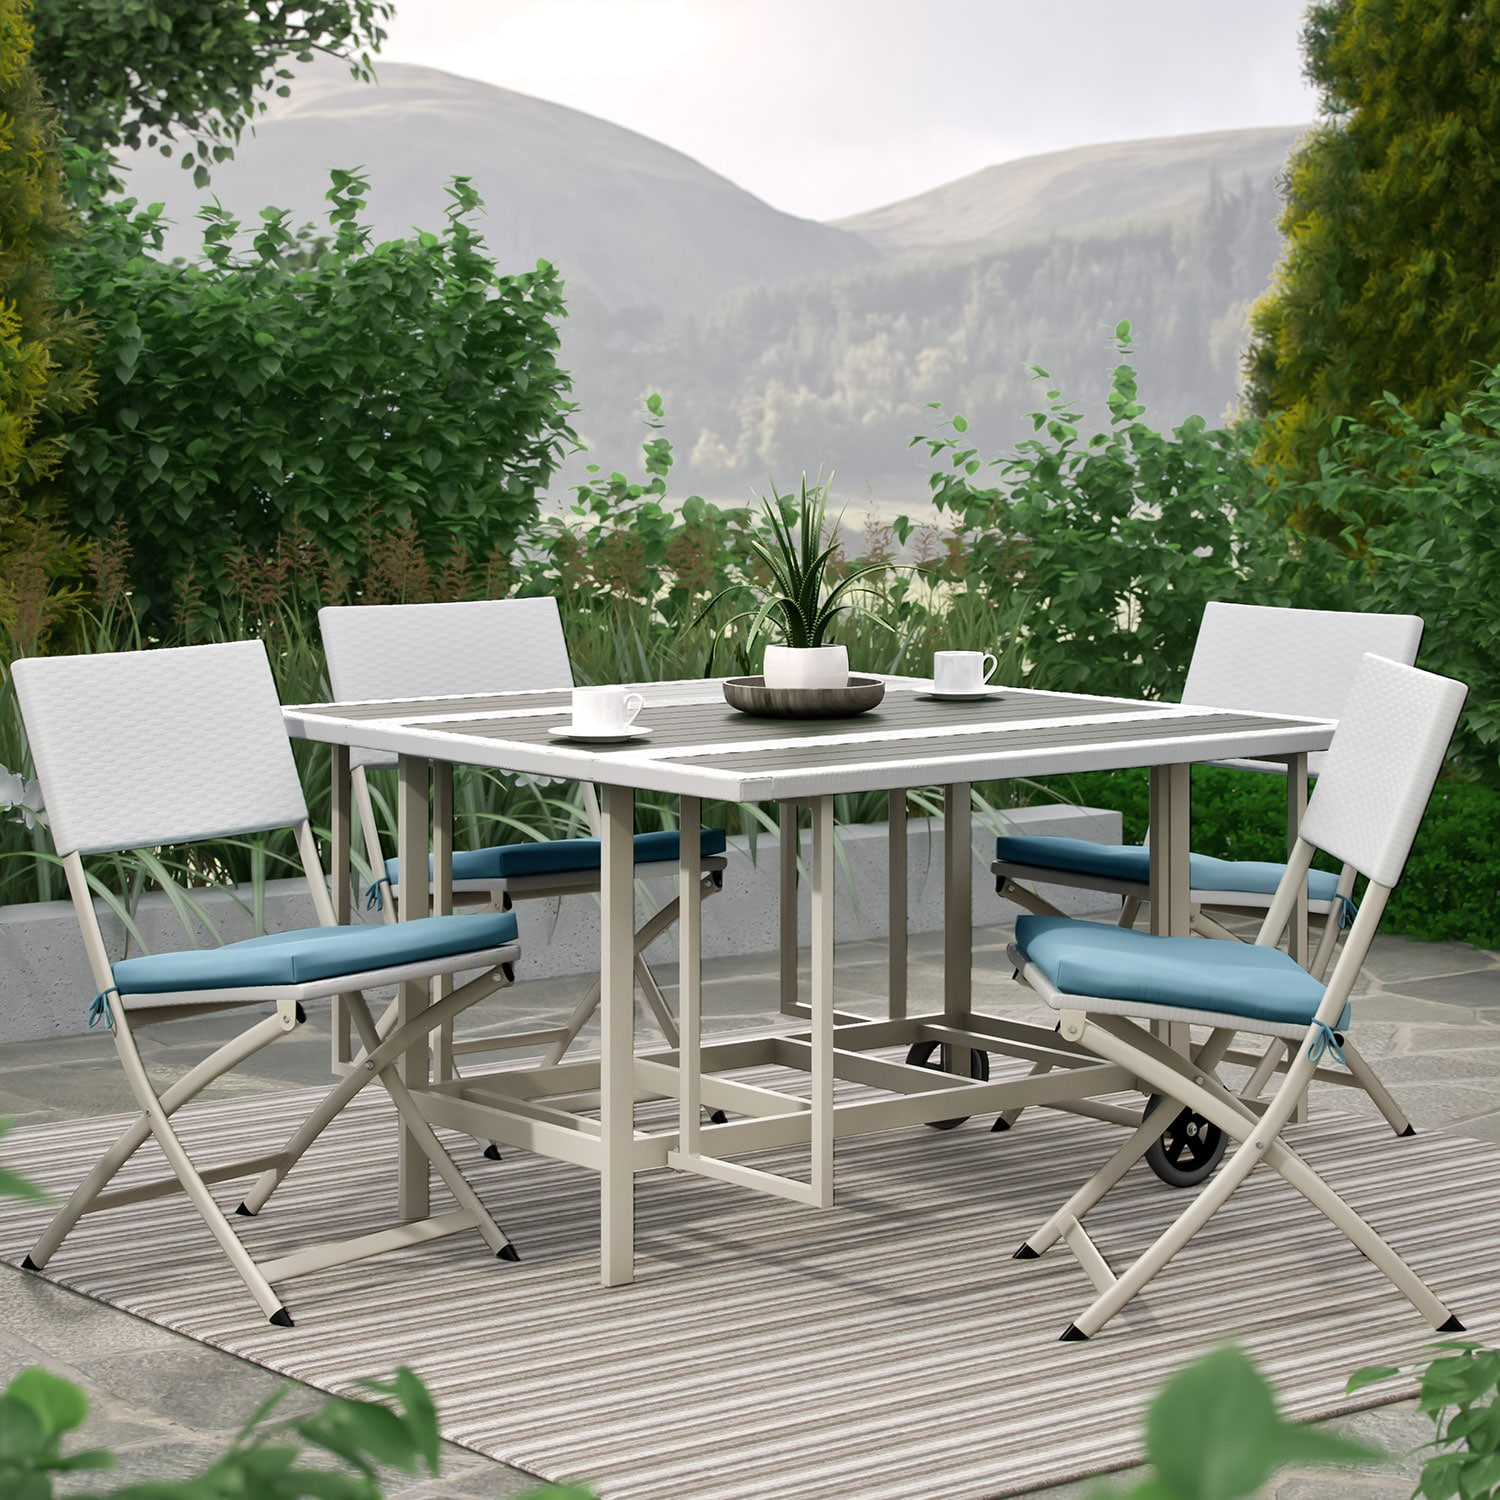 Outdoor Furniture - Stowable Folding 5-Piece Patio Dining Set